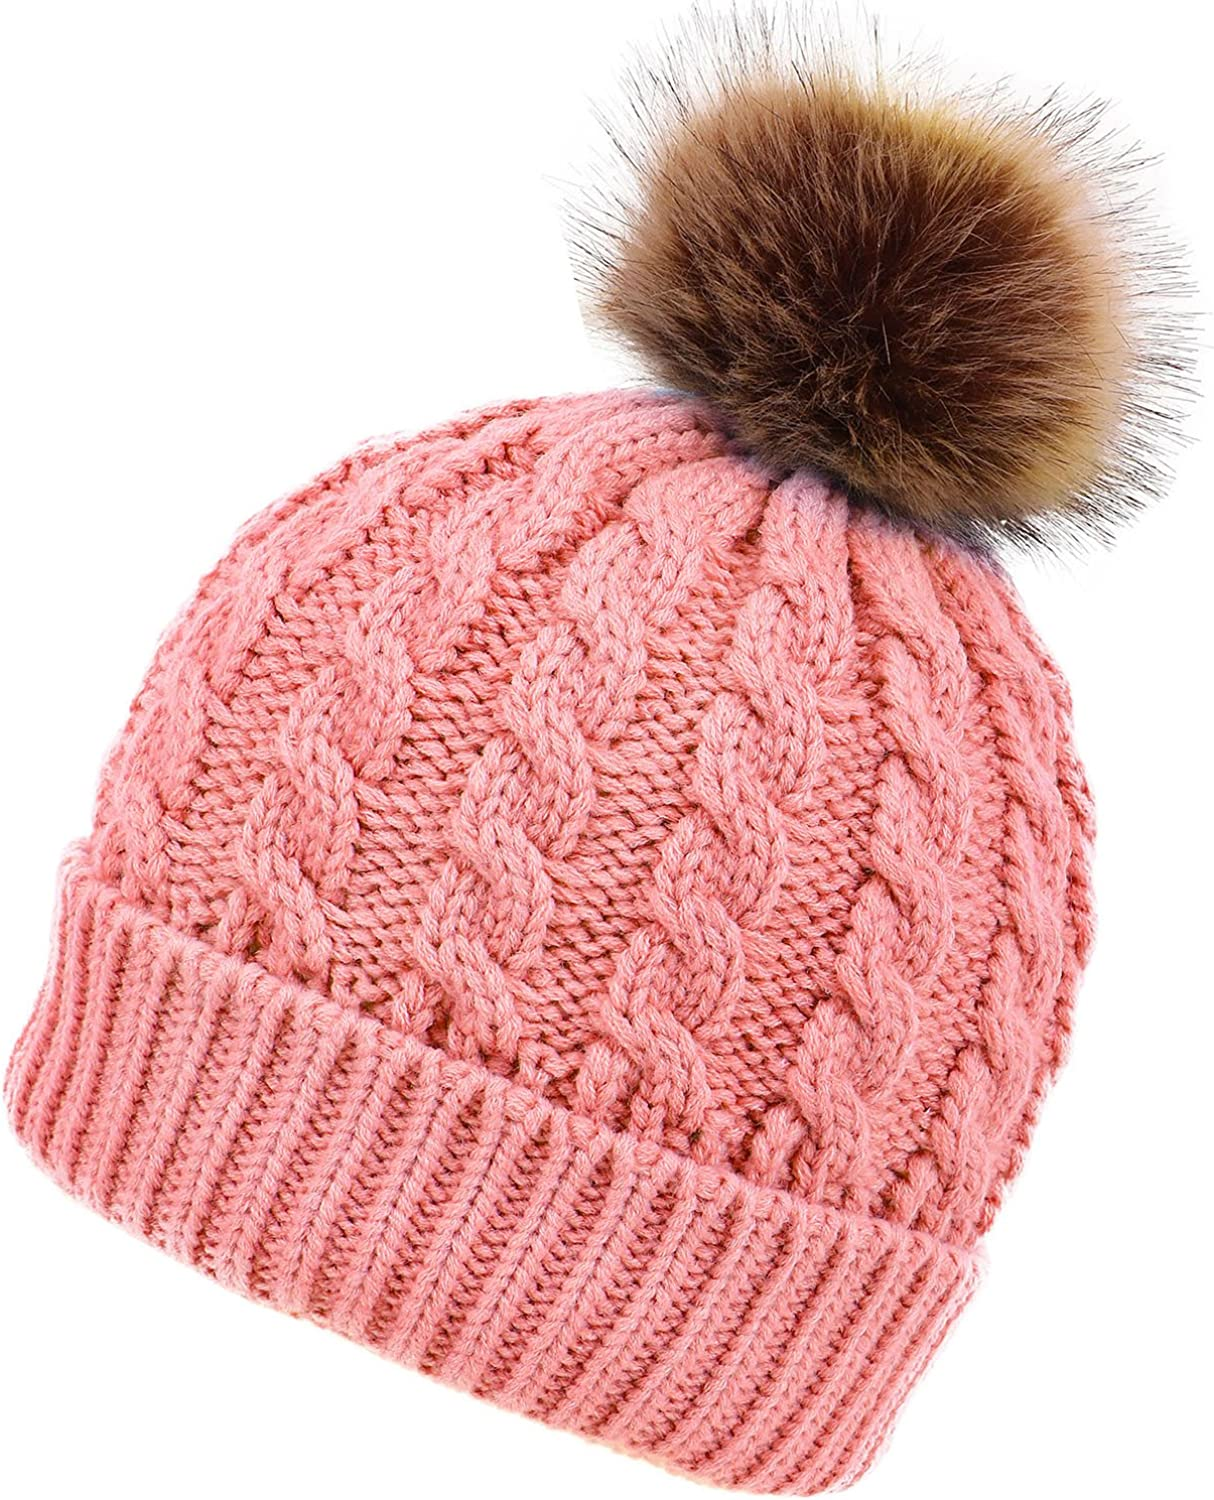 EPGM Men & Women's Winter Cable Knit Faux Fur Pom Pom Foldable Cuff Beanie Hat